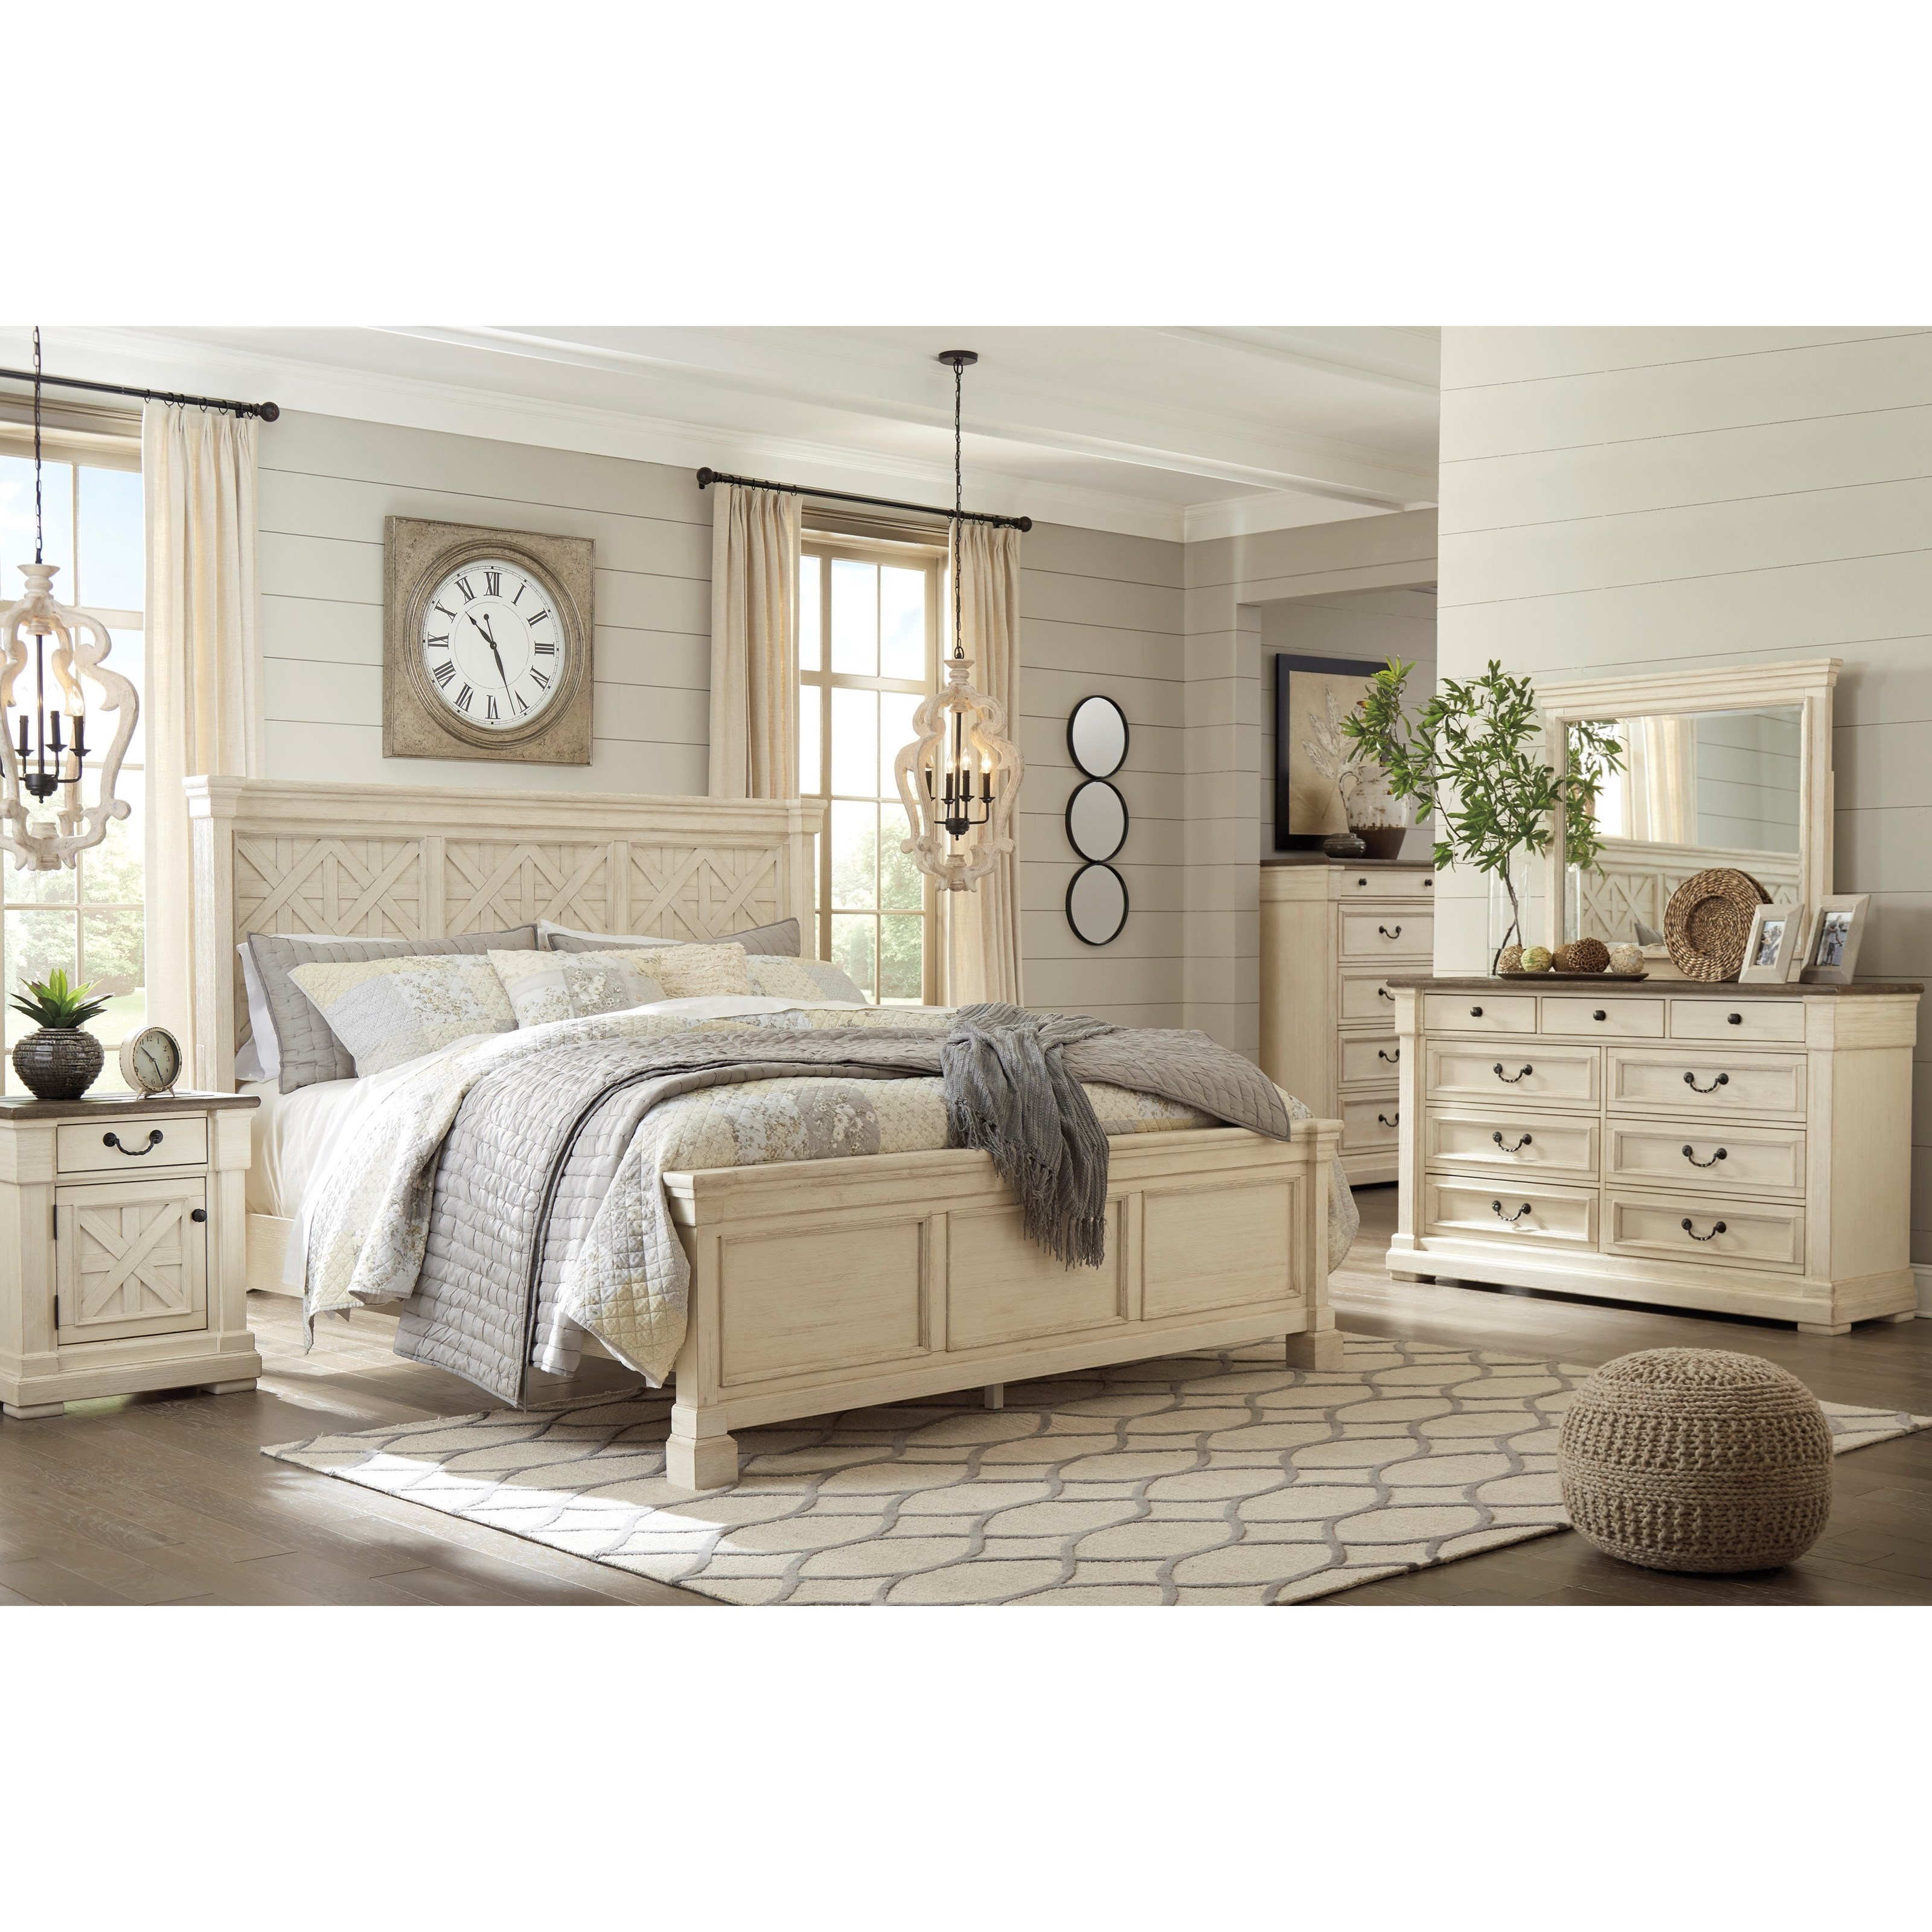 California King Bedroom Set: California King Bedroom Group By Signature Design By